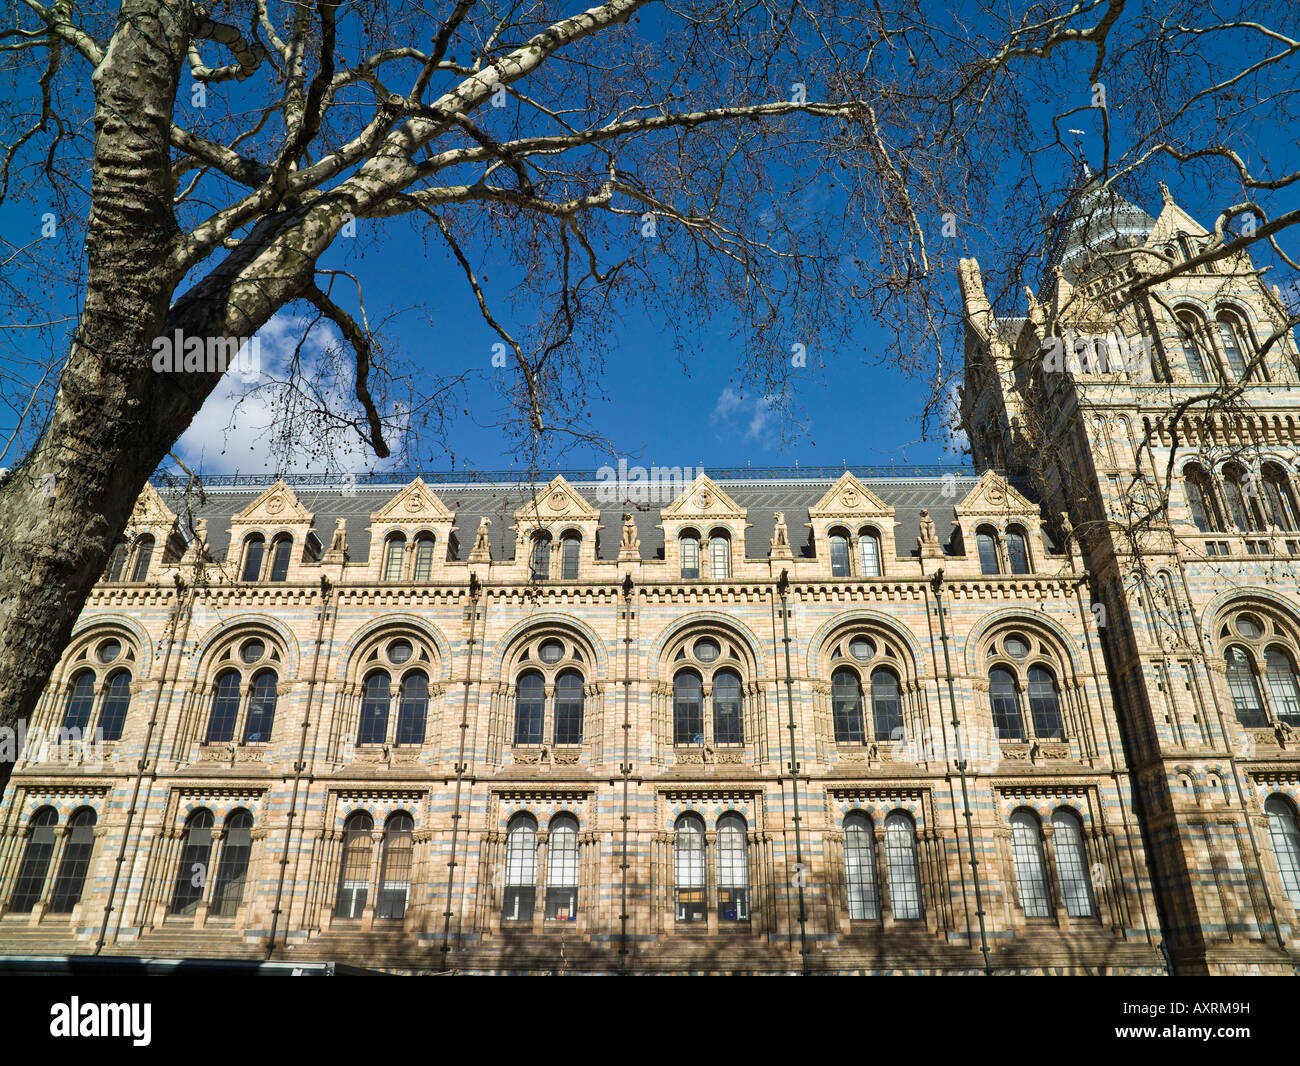 main facade, Museum of Natural History, London - Stock Image